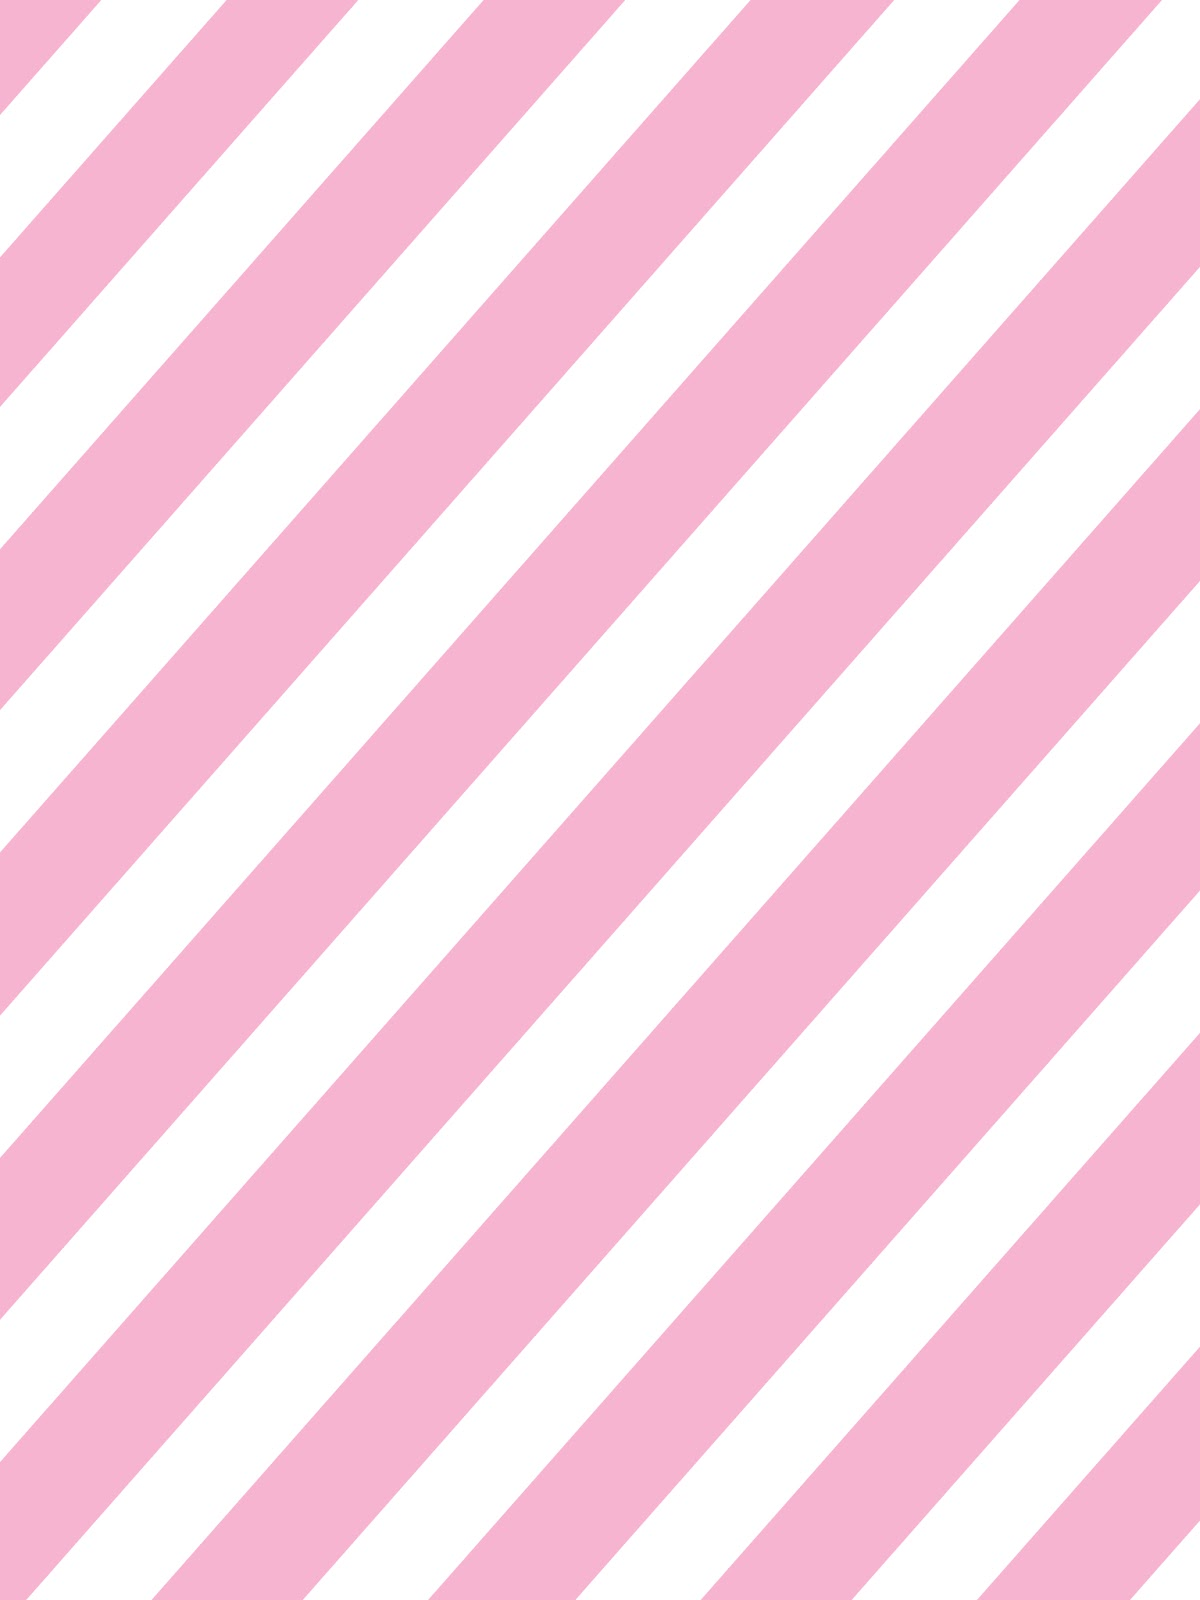 Baby Pink Wallpaper Hd 41+ - dzbc.org